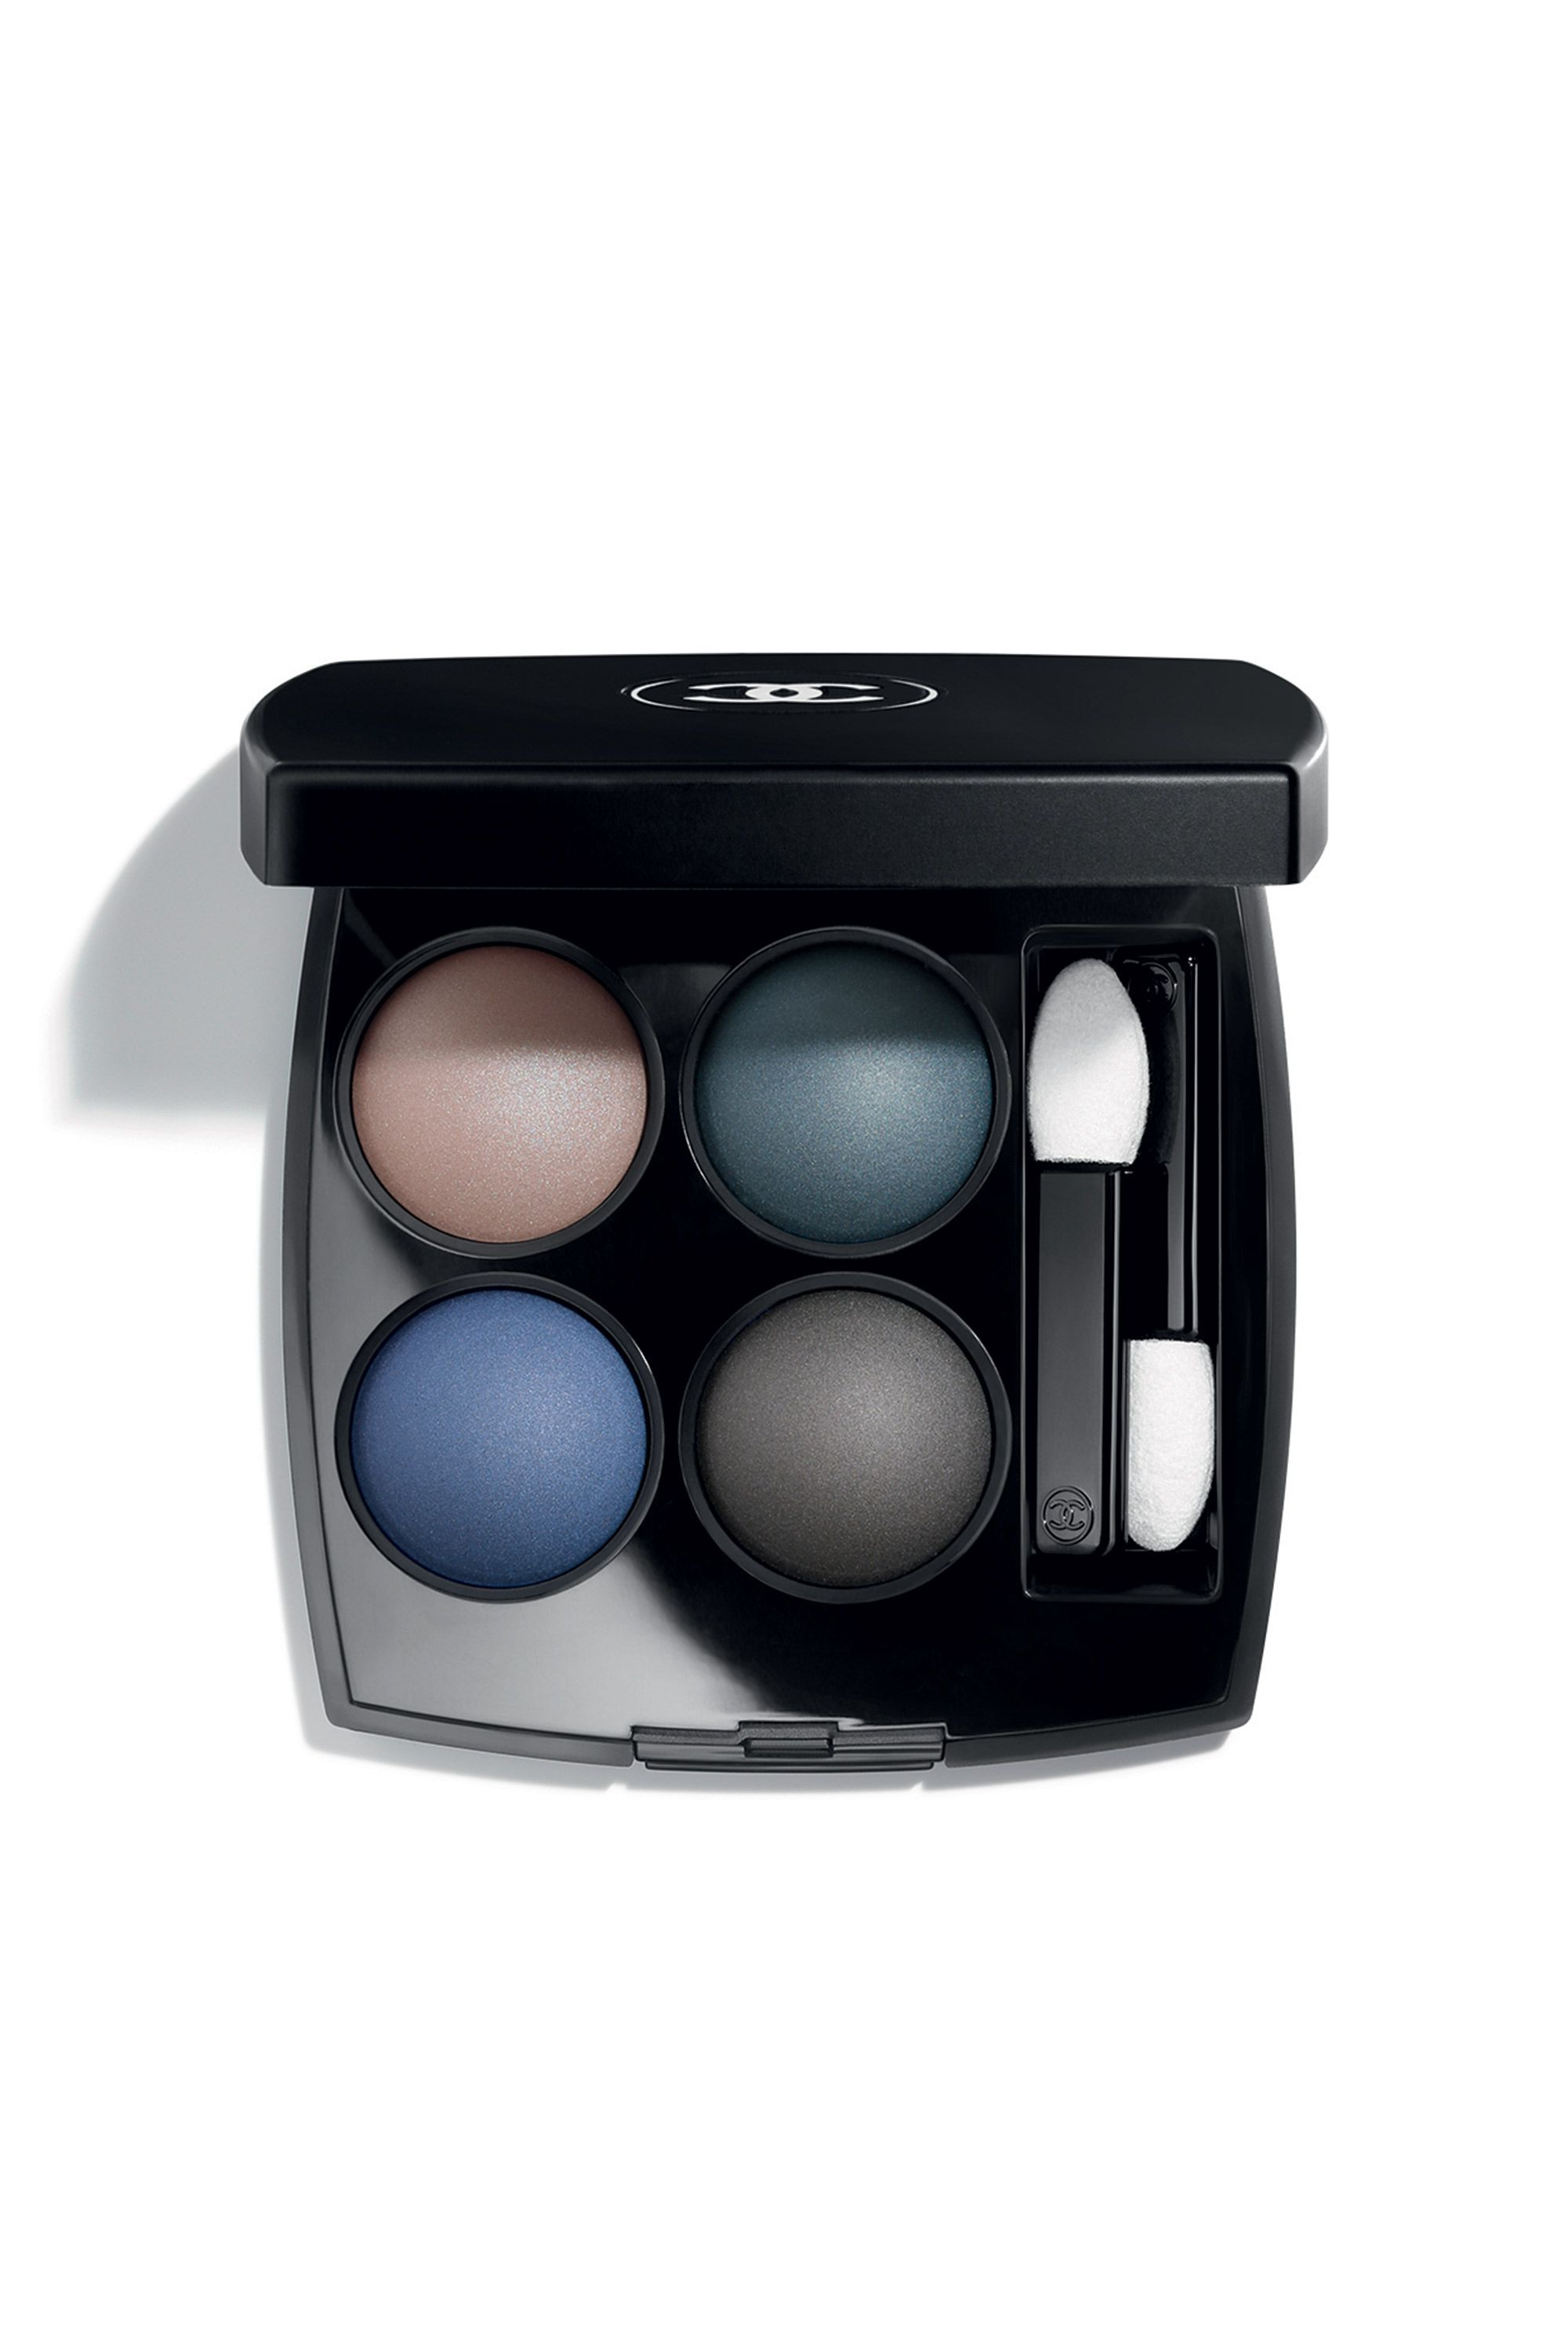 Chanel winter makeup collection